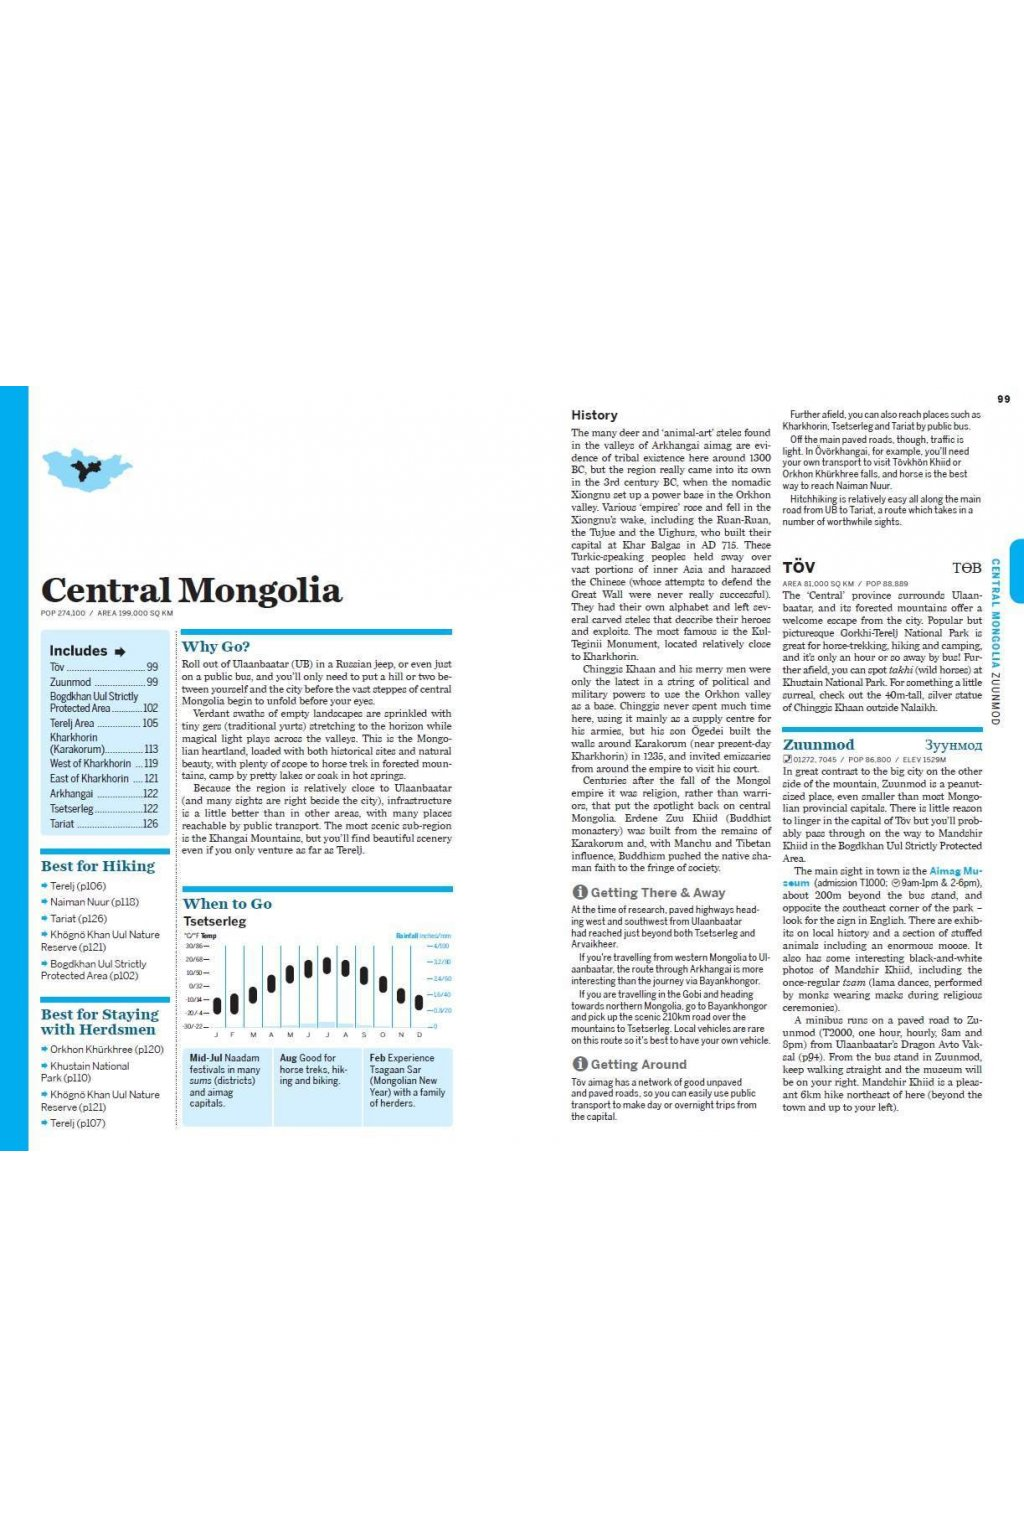 mongolia pr蟇vodce lonely planet v angli芻tin茆